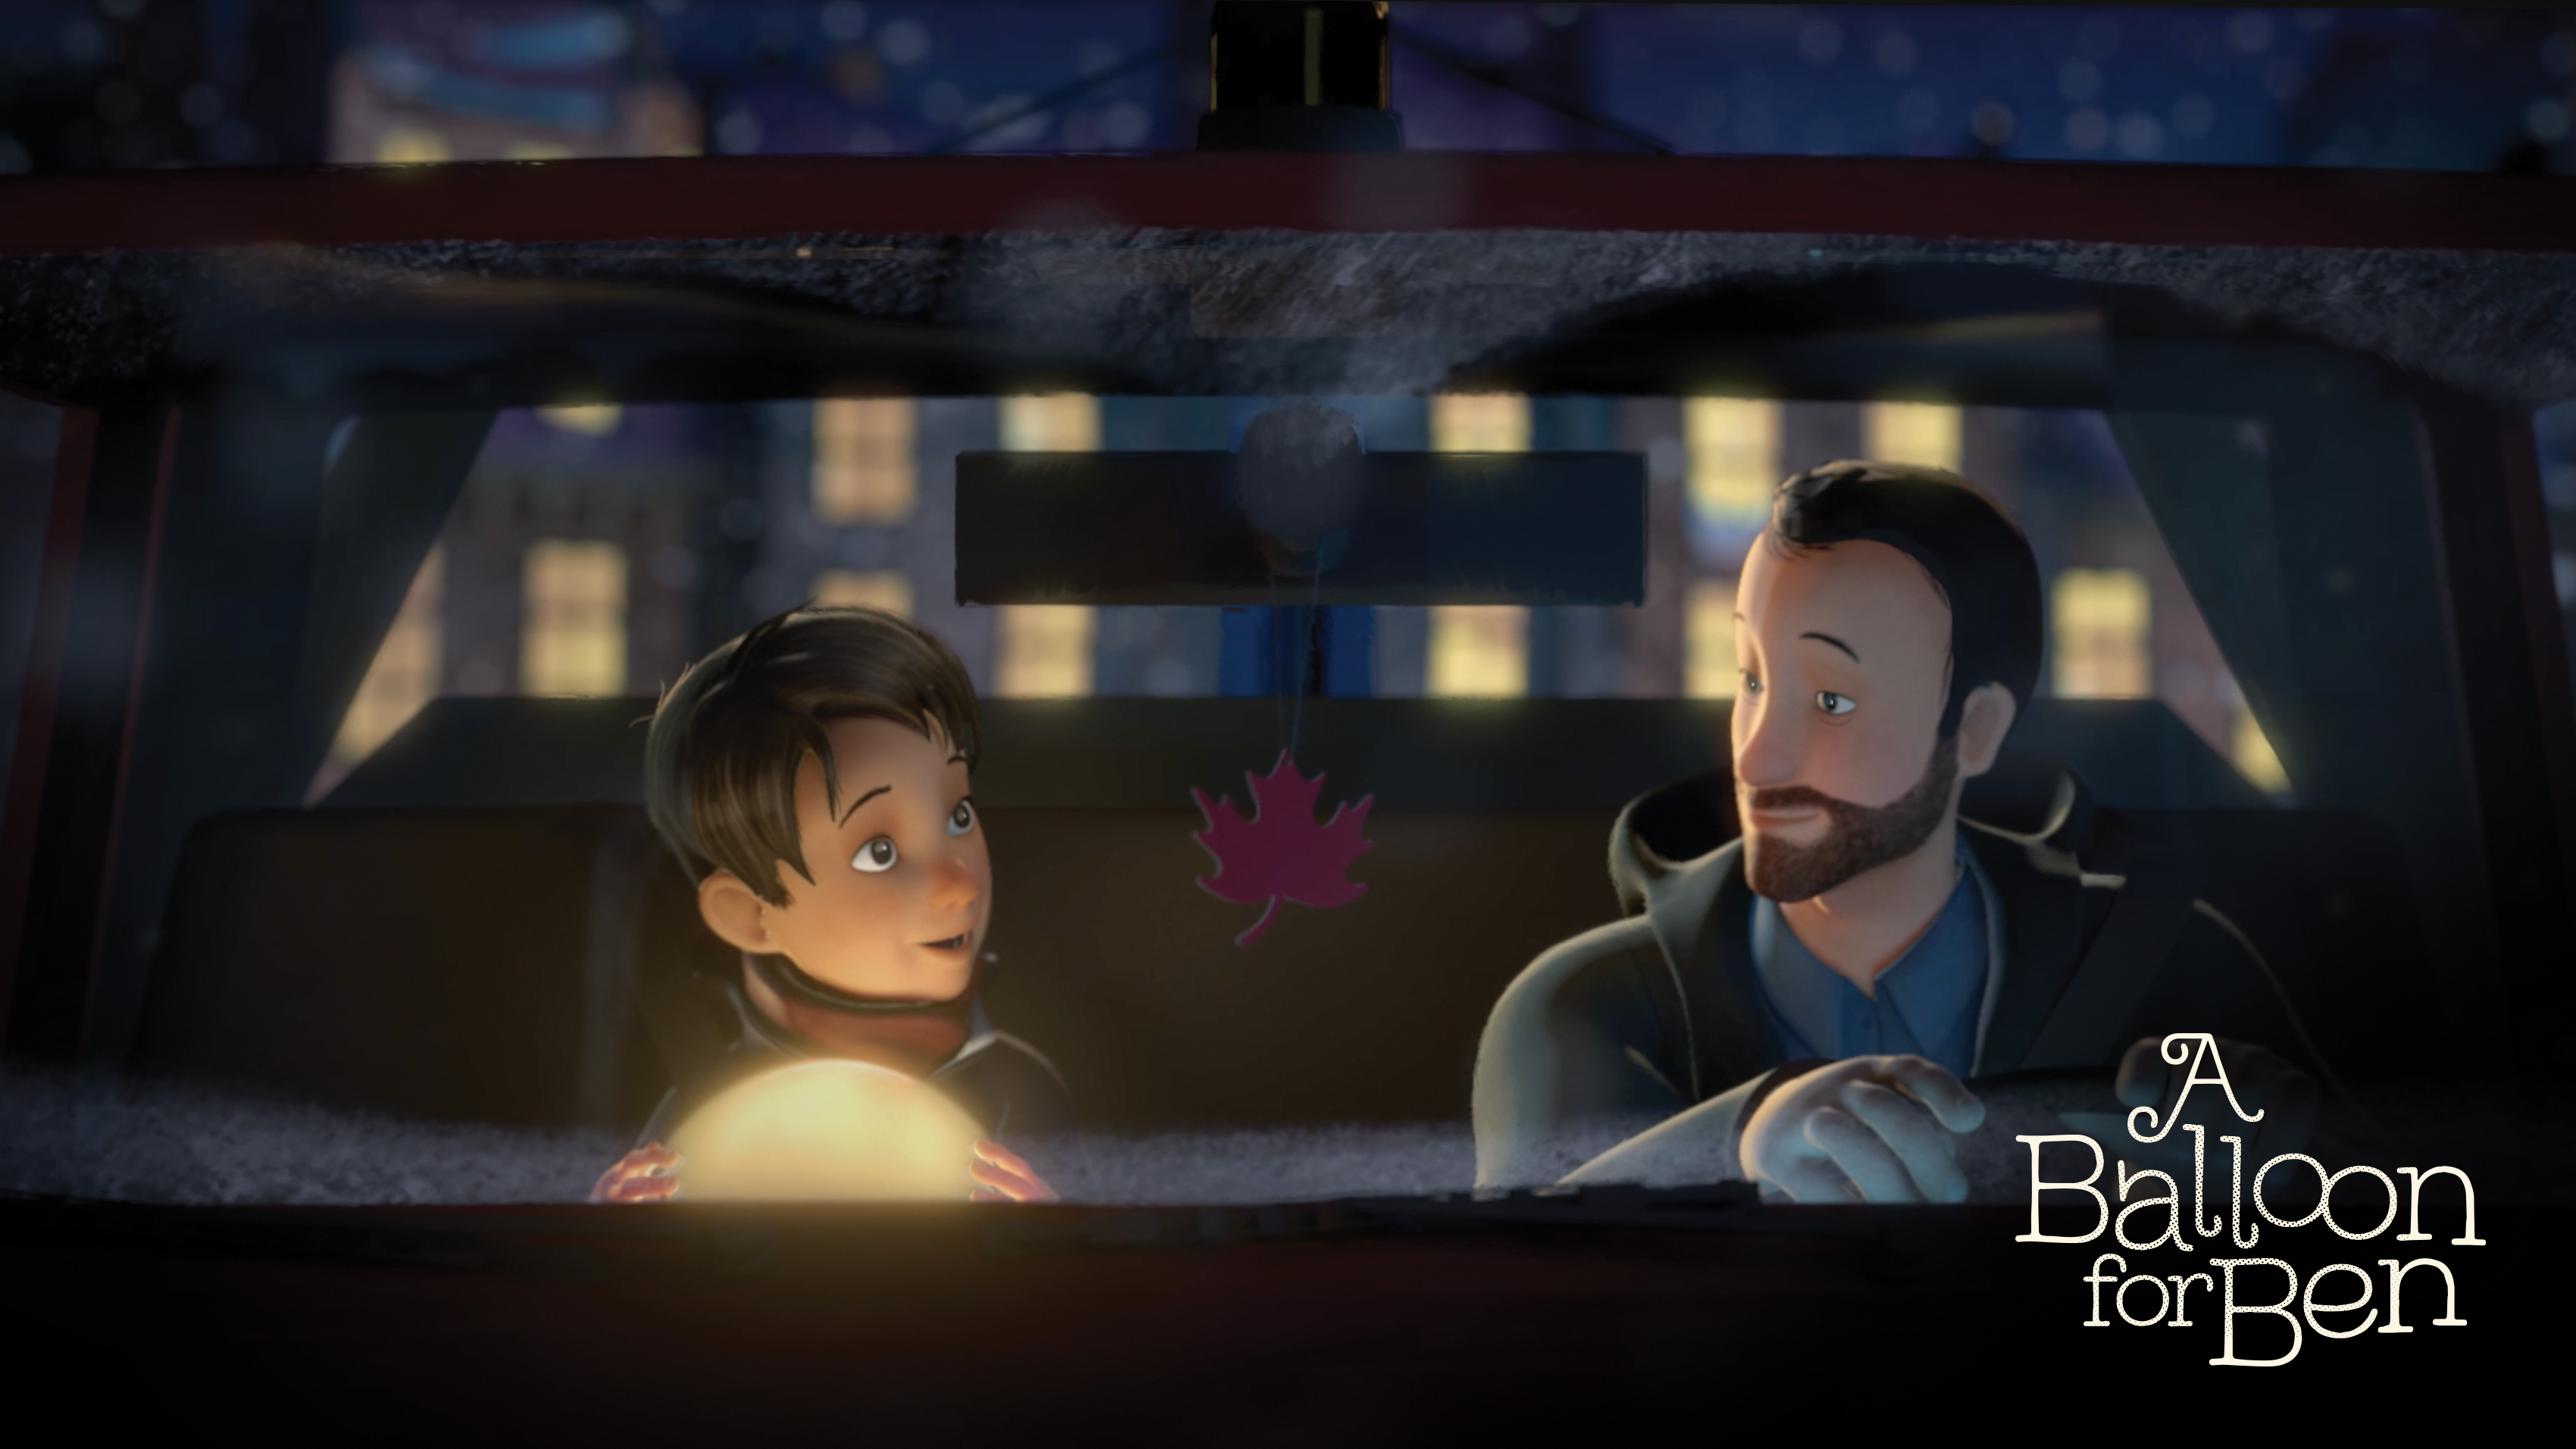 """Zulu Alpha Kilo and Cineplex's animated short """"A Balloon for Ben"""" hit all the right festive notes and was named one of the best holiday ads of the year by Huffington Post."""